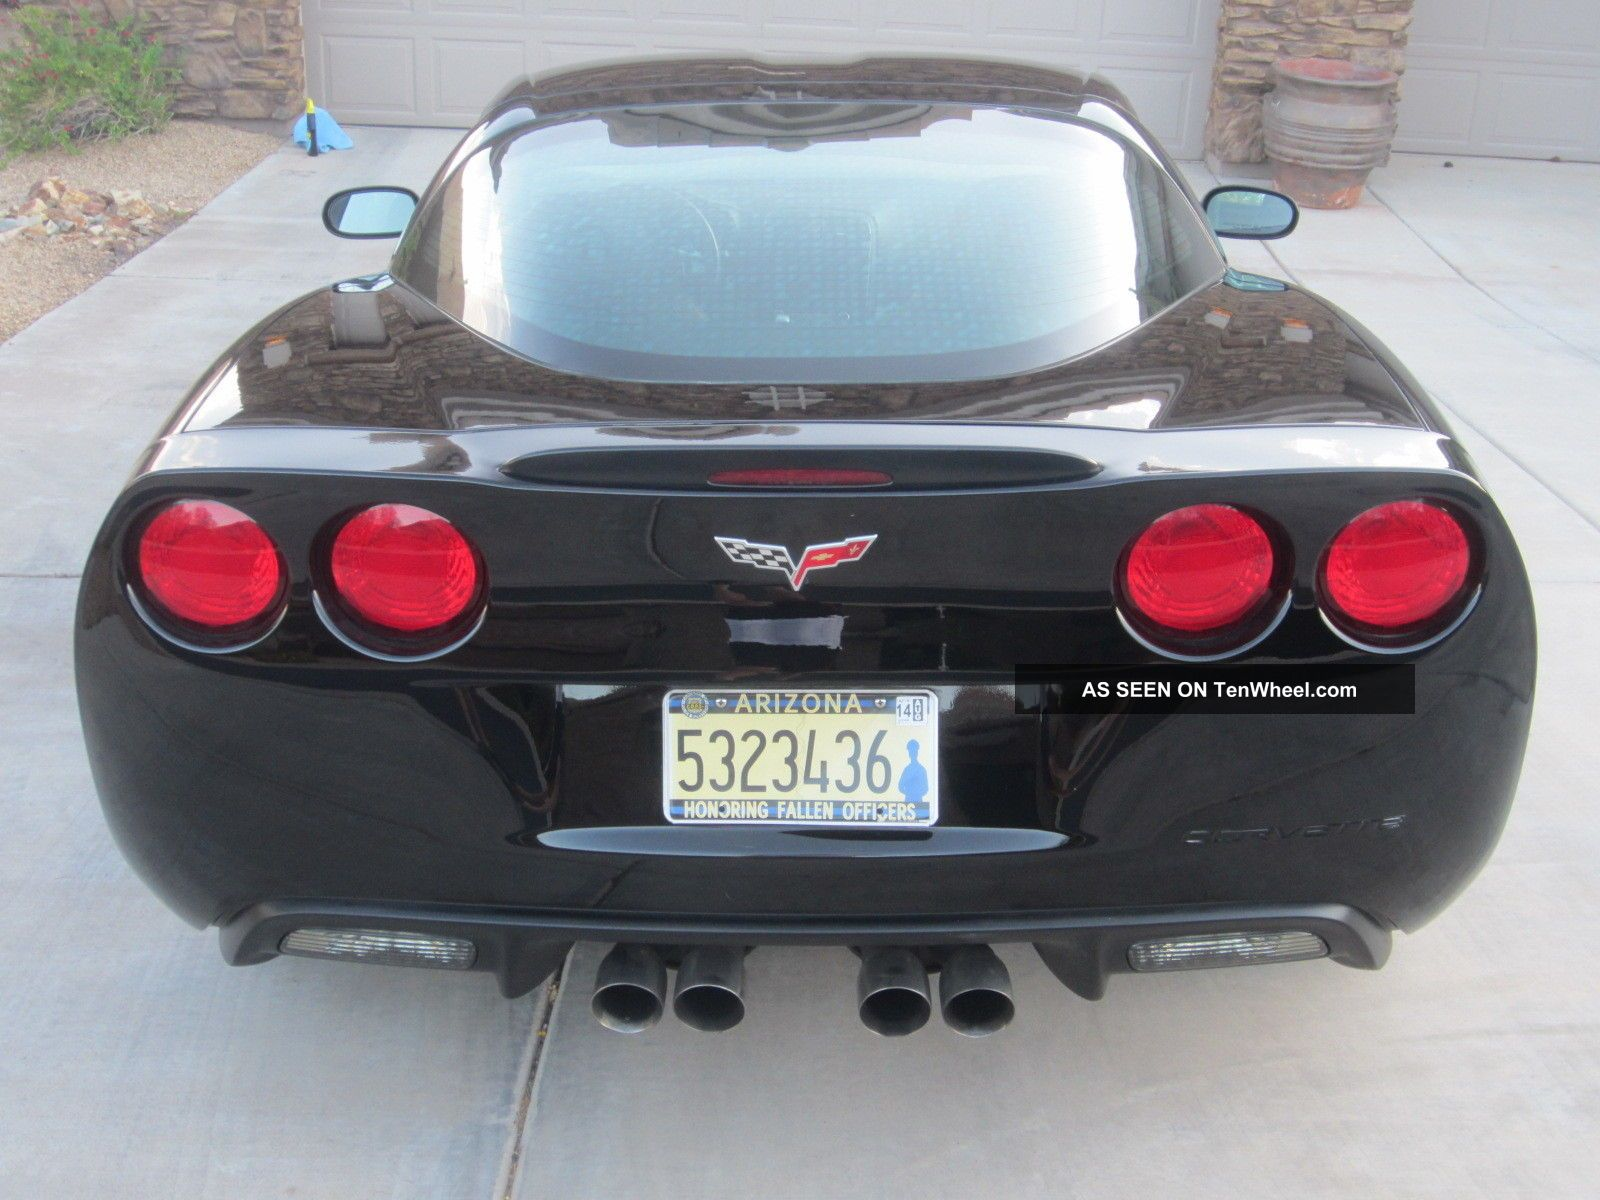 2008 Corvette C6 Indy Pace Car, 3lt, Z51, Dual Mode Exhaust